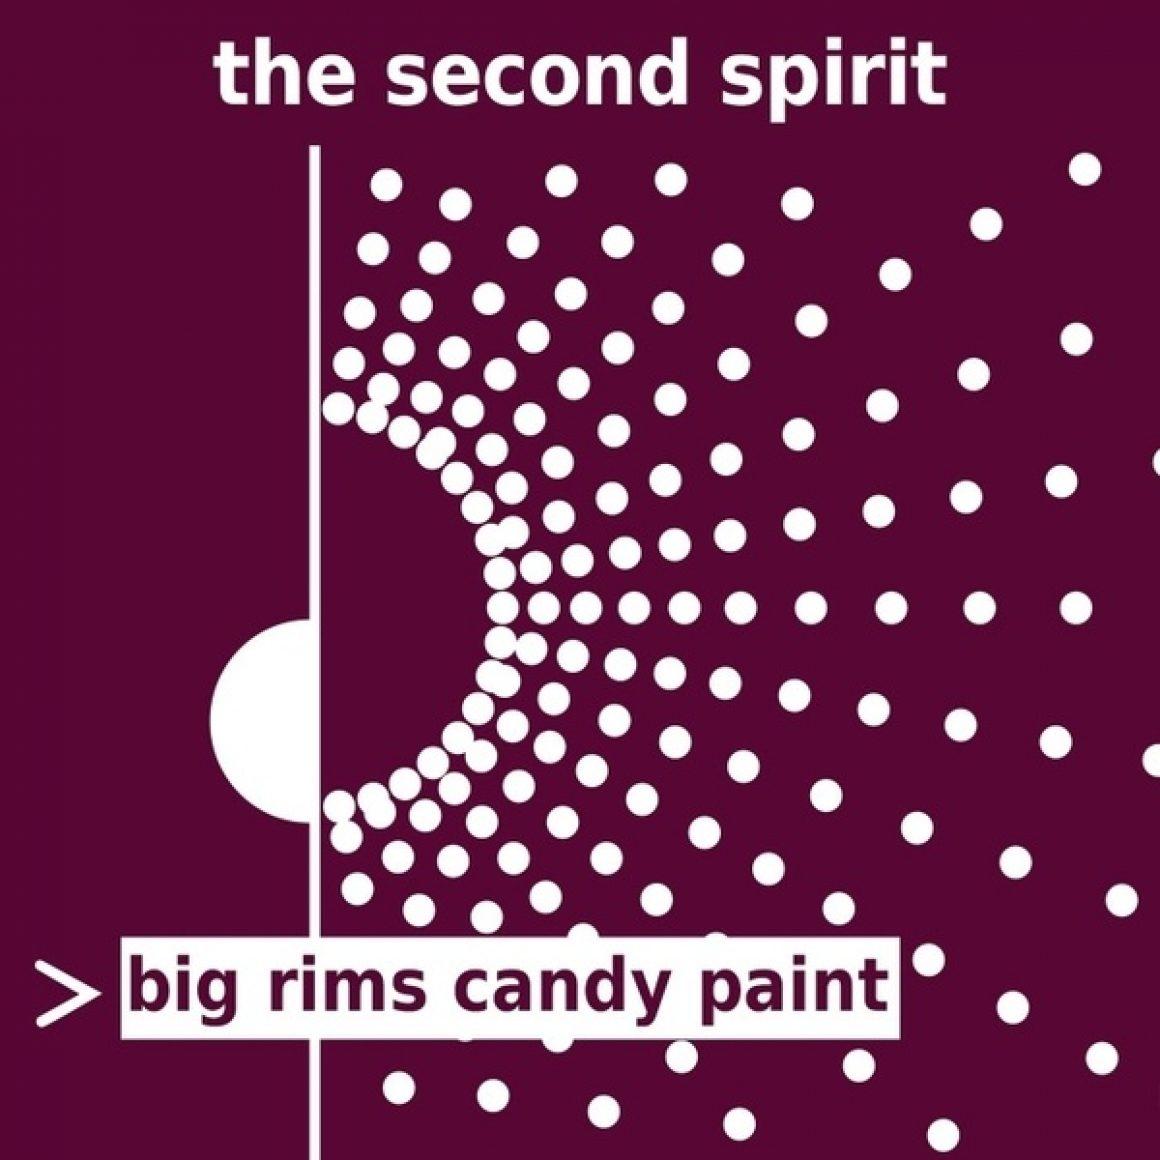 Big Rims Candy Paint - The Second Spirit - Cover Art